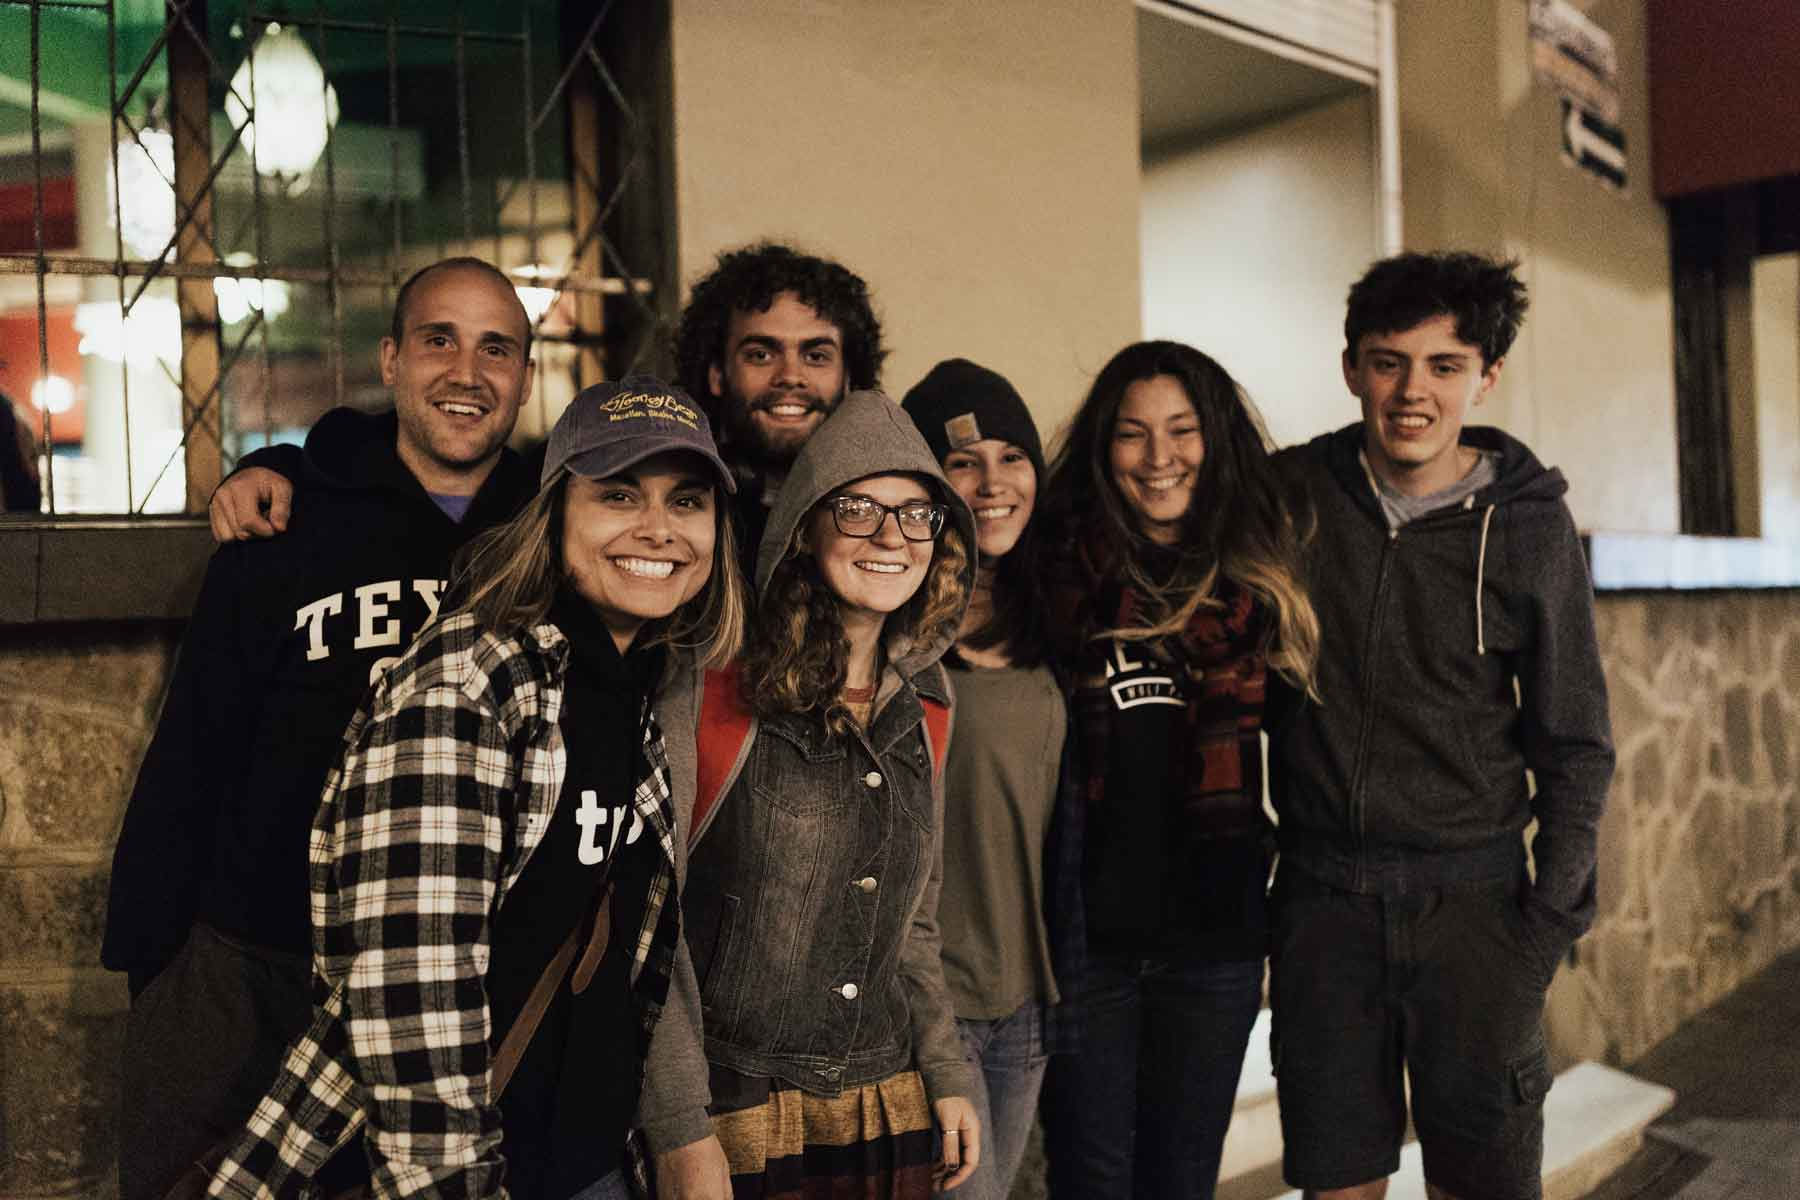 YWAM missionaries smiling outside of café in downtown Mazatlan, Mexico